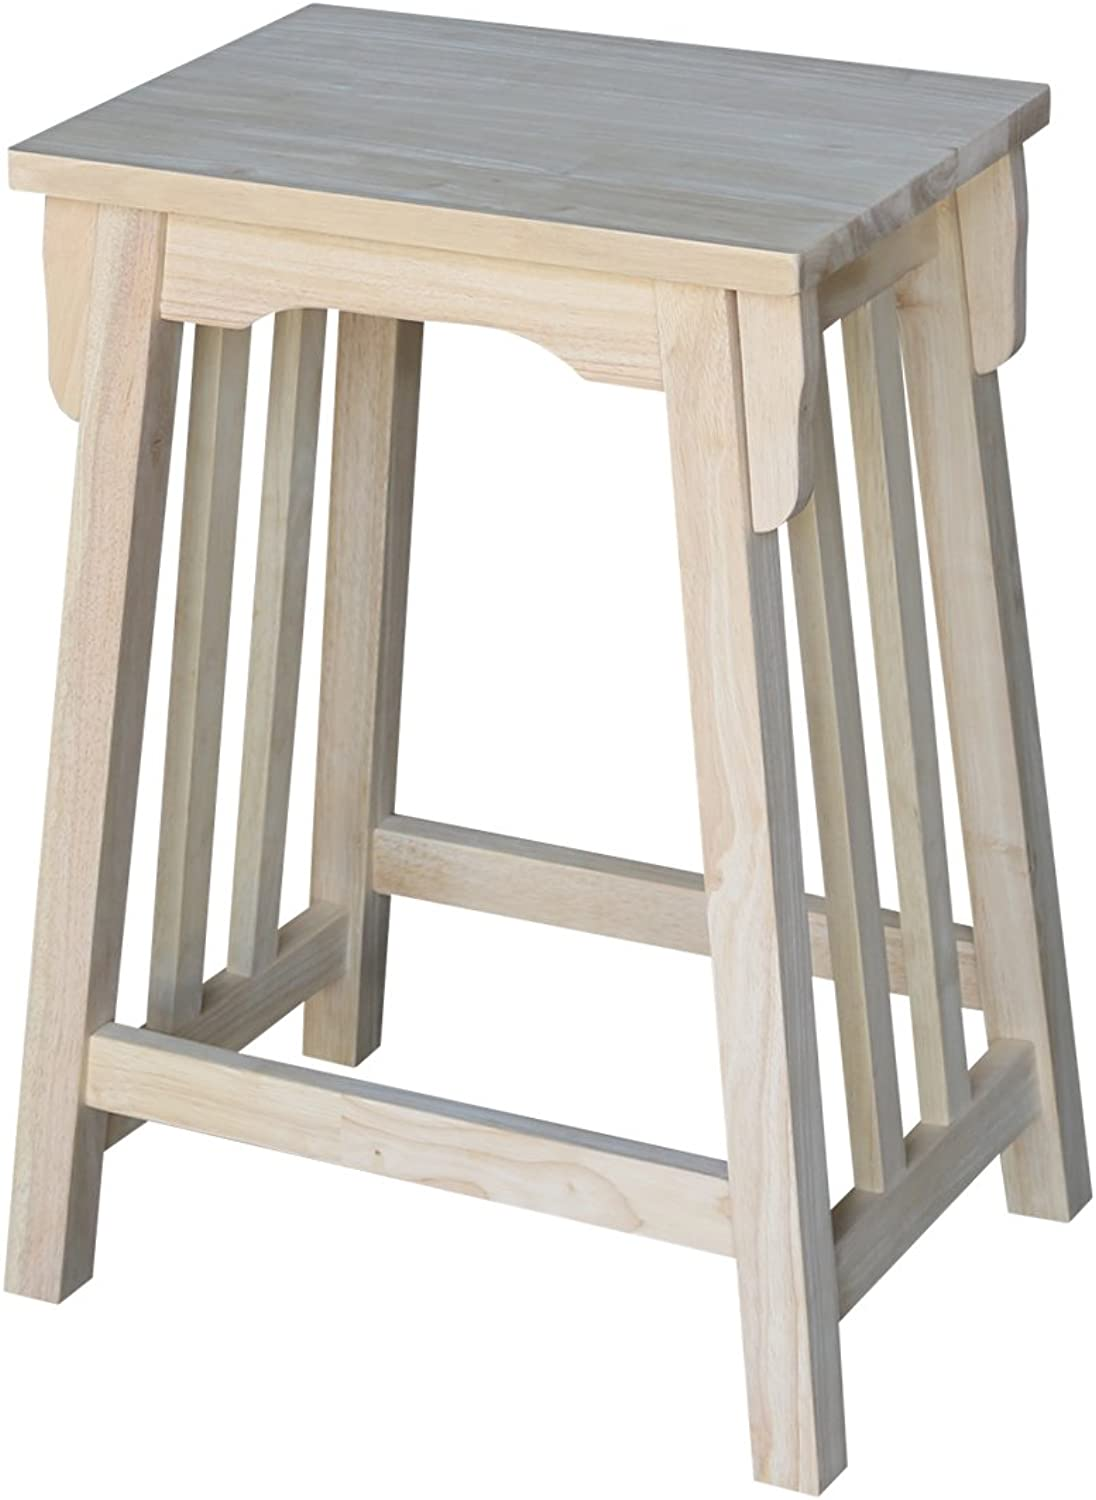 International Concepts S-324 Mission Counter Stool - 24 Inch Seat Height